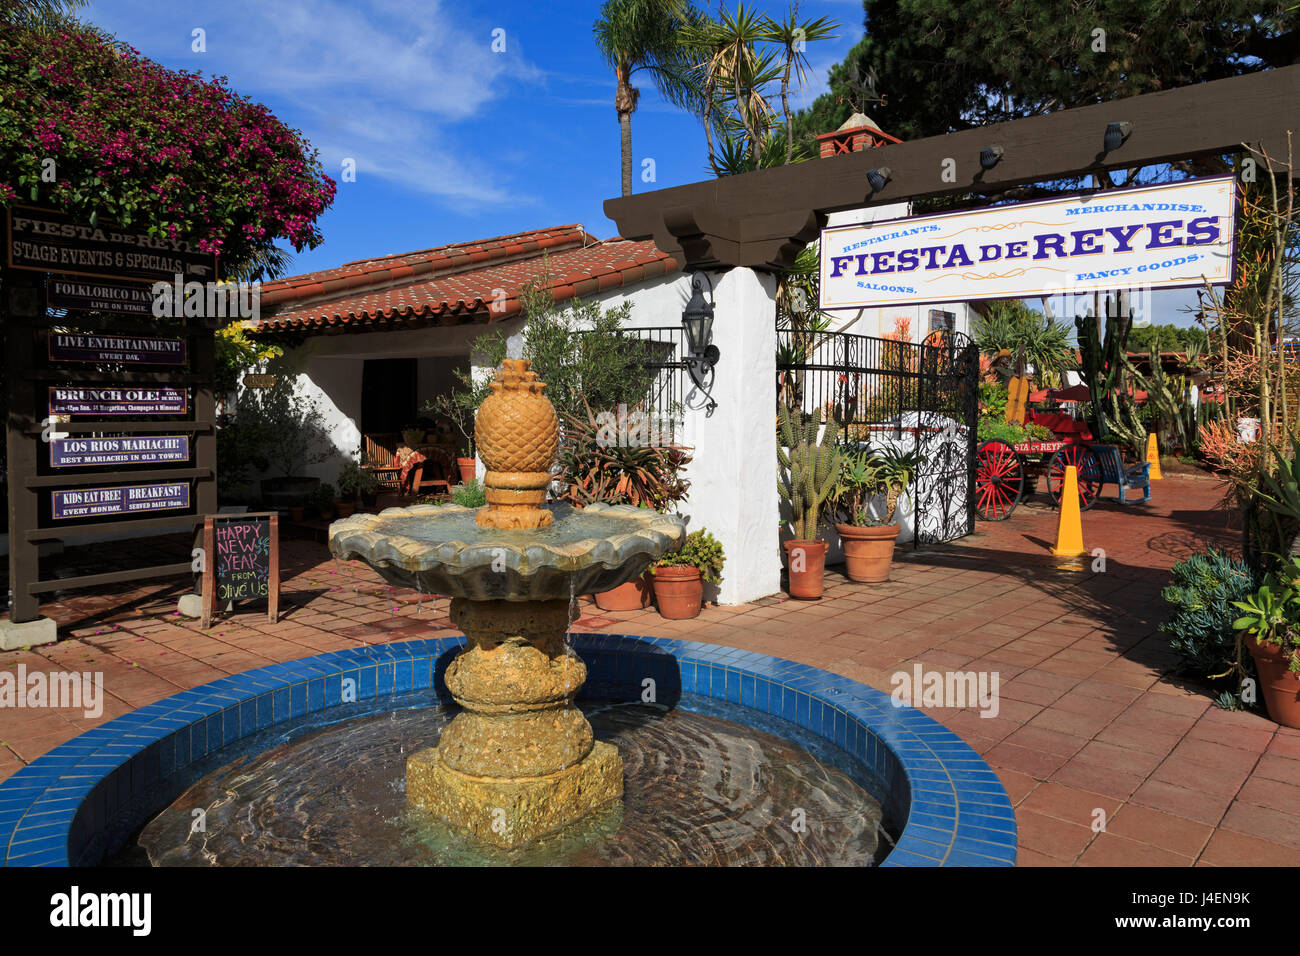 Fiesta De Reyes, Old Town Sate Historic Park, San Diego, California, United States of America, North America - Stock Image